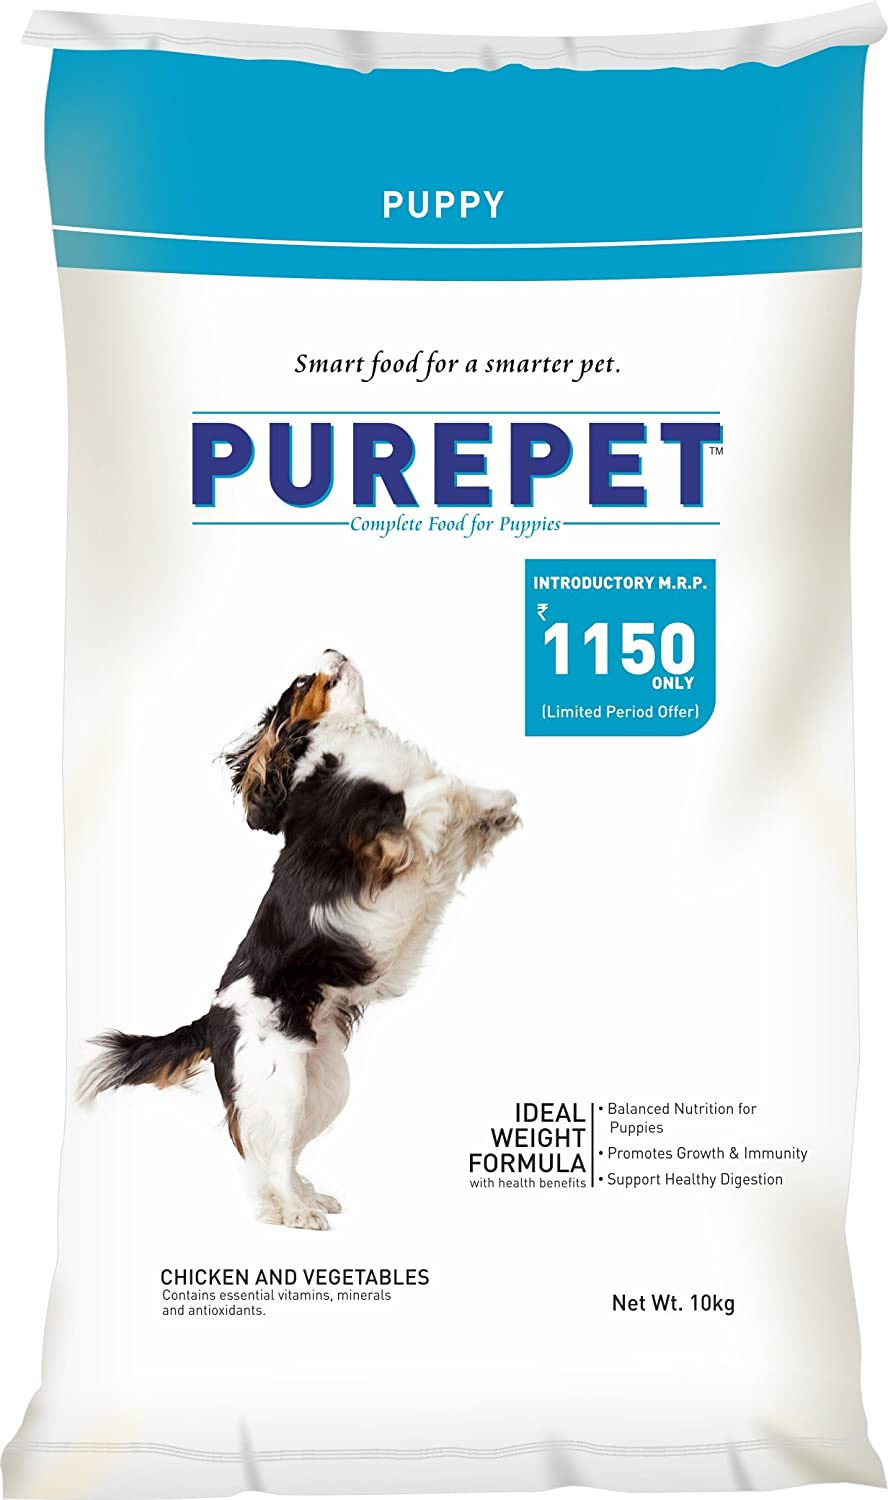 Purepet Chicken & Vegetables Puppy Dog Food - Pet Chum